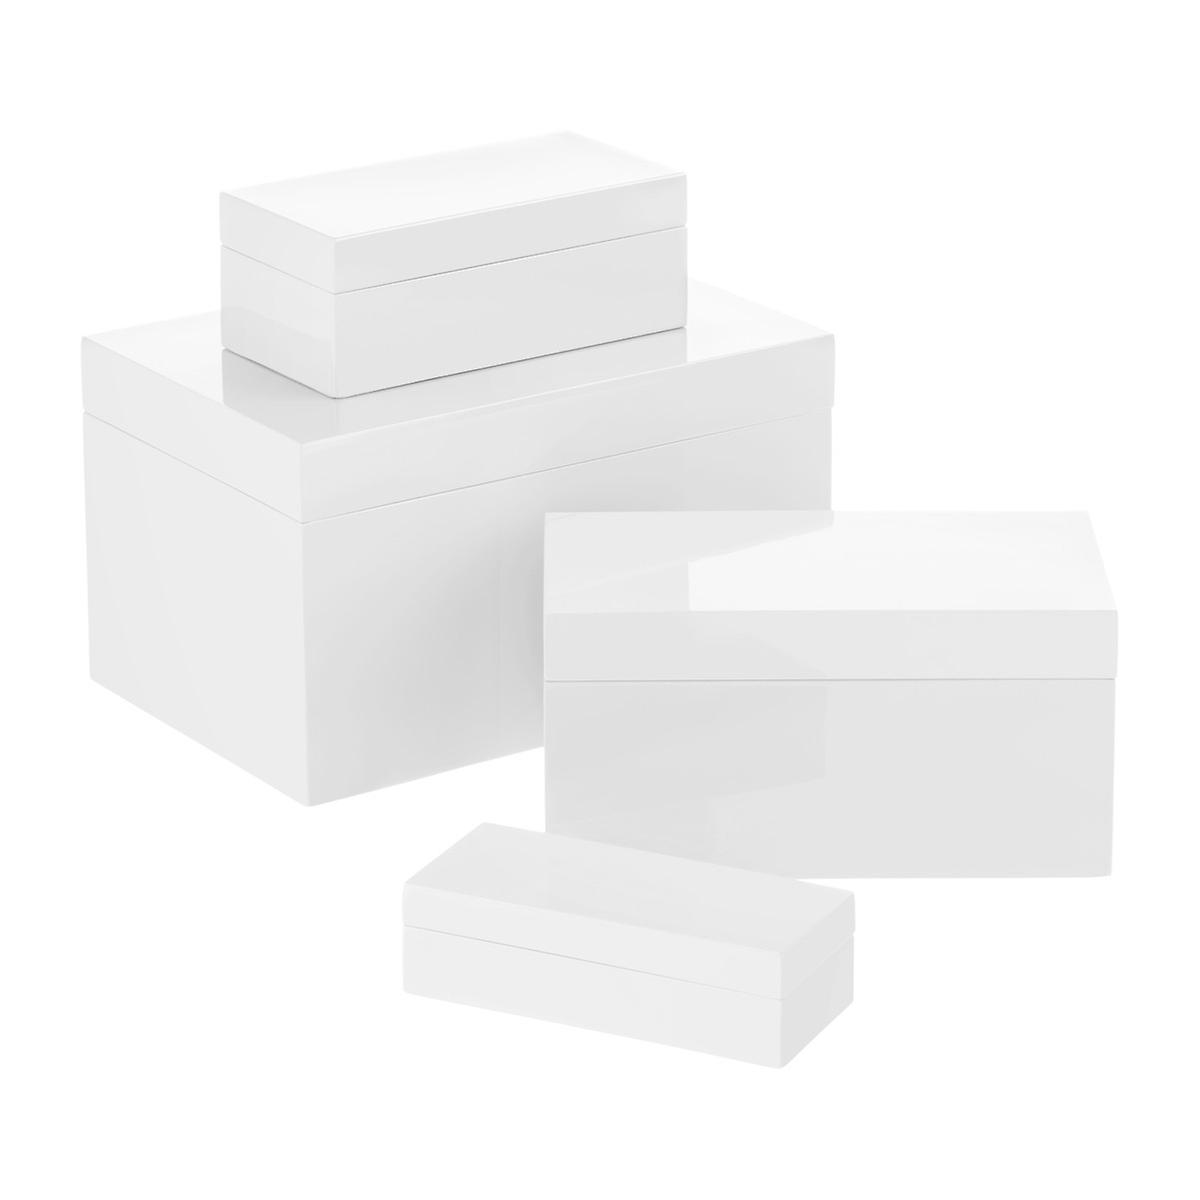 White Lacquered Storage Boxes